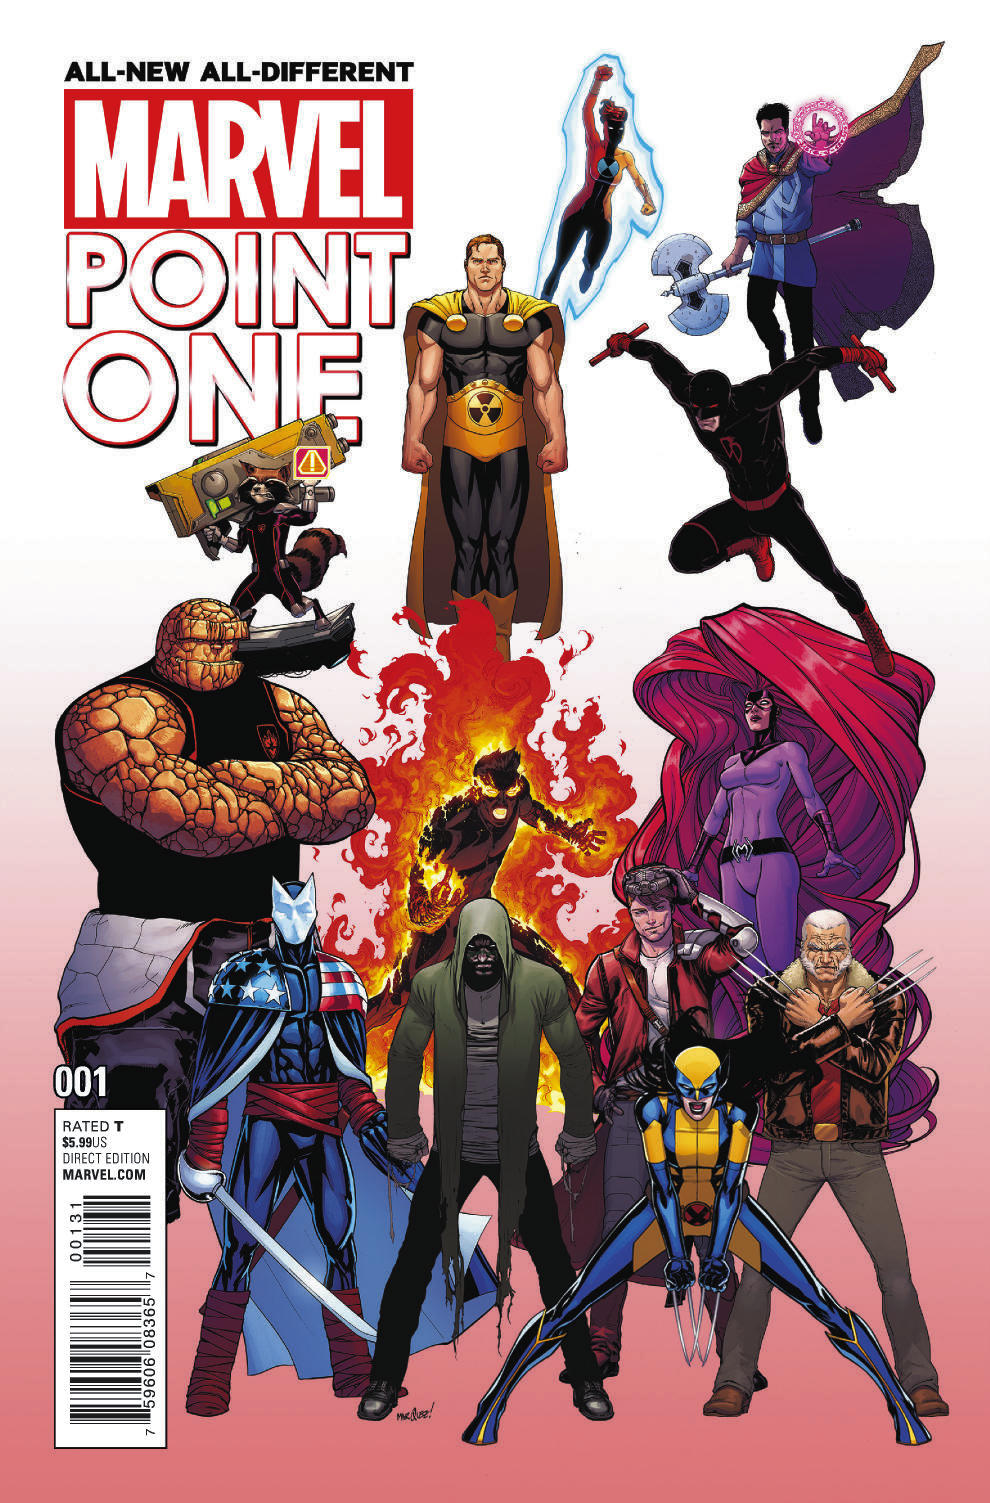 All-New All-Different Marvel Point One